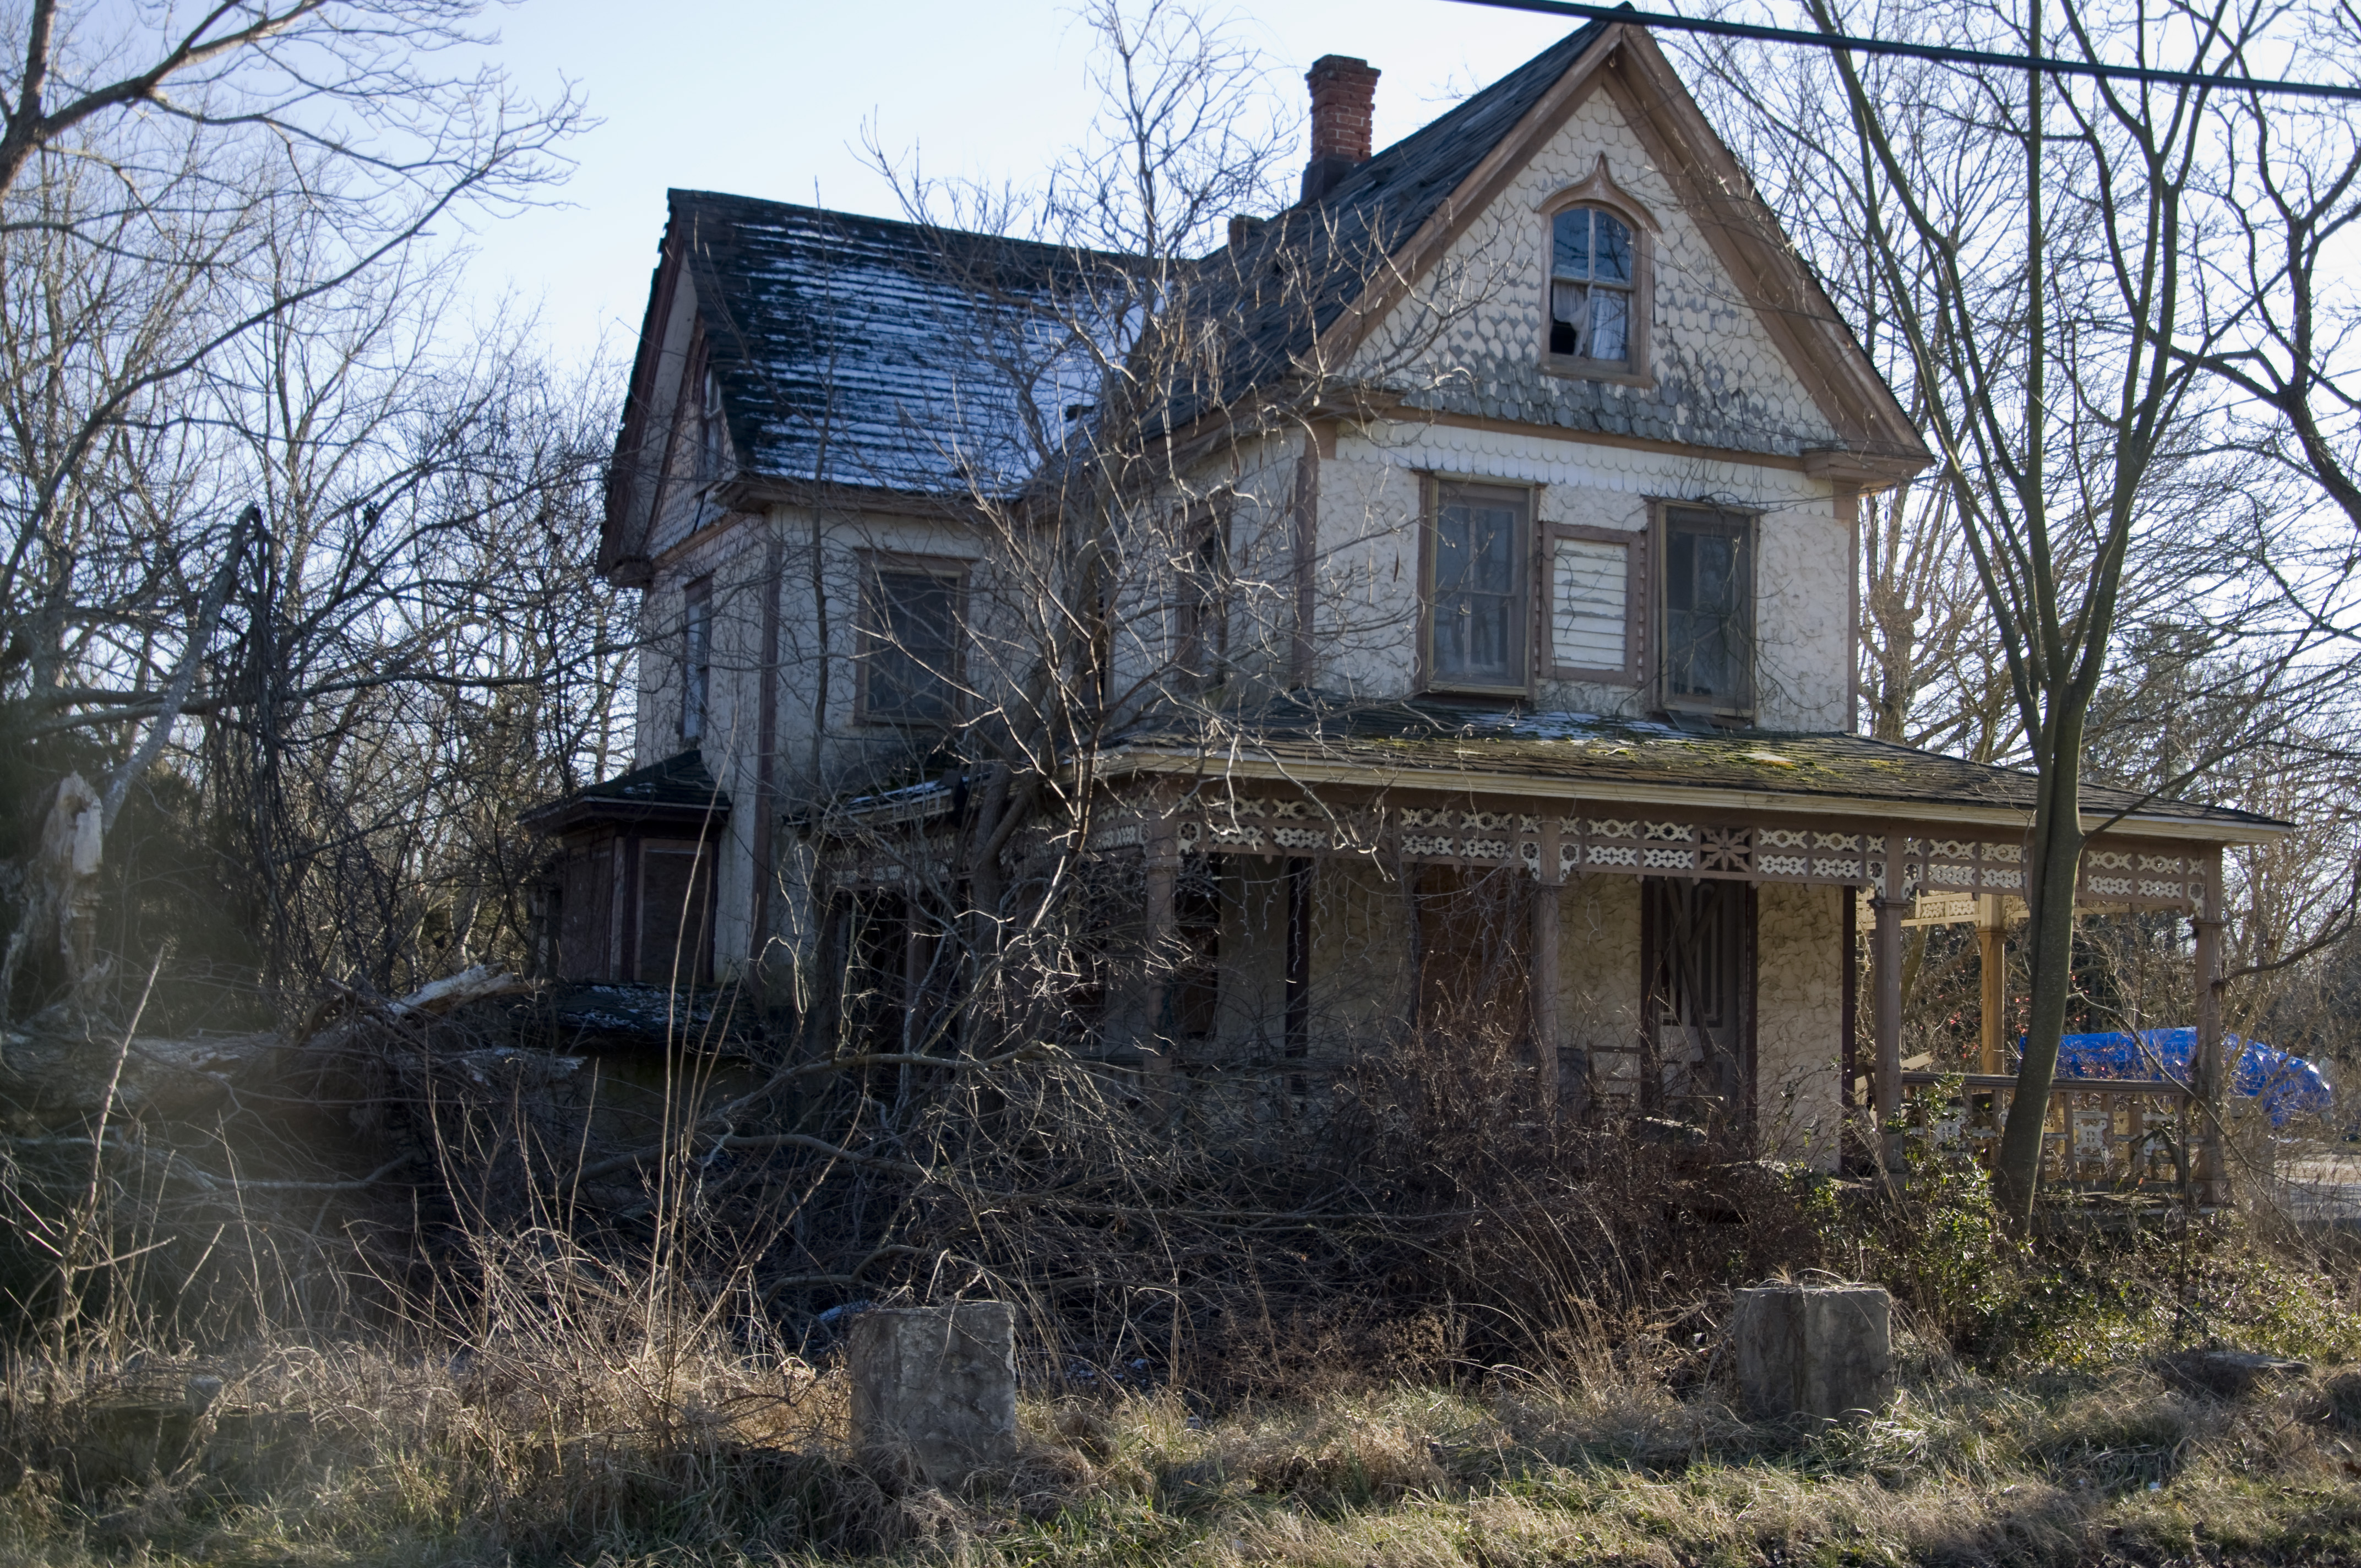 Haunted house haunted houses pinterest for Pinterest haunted house